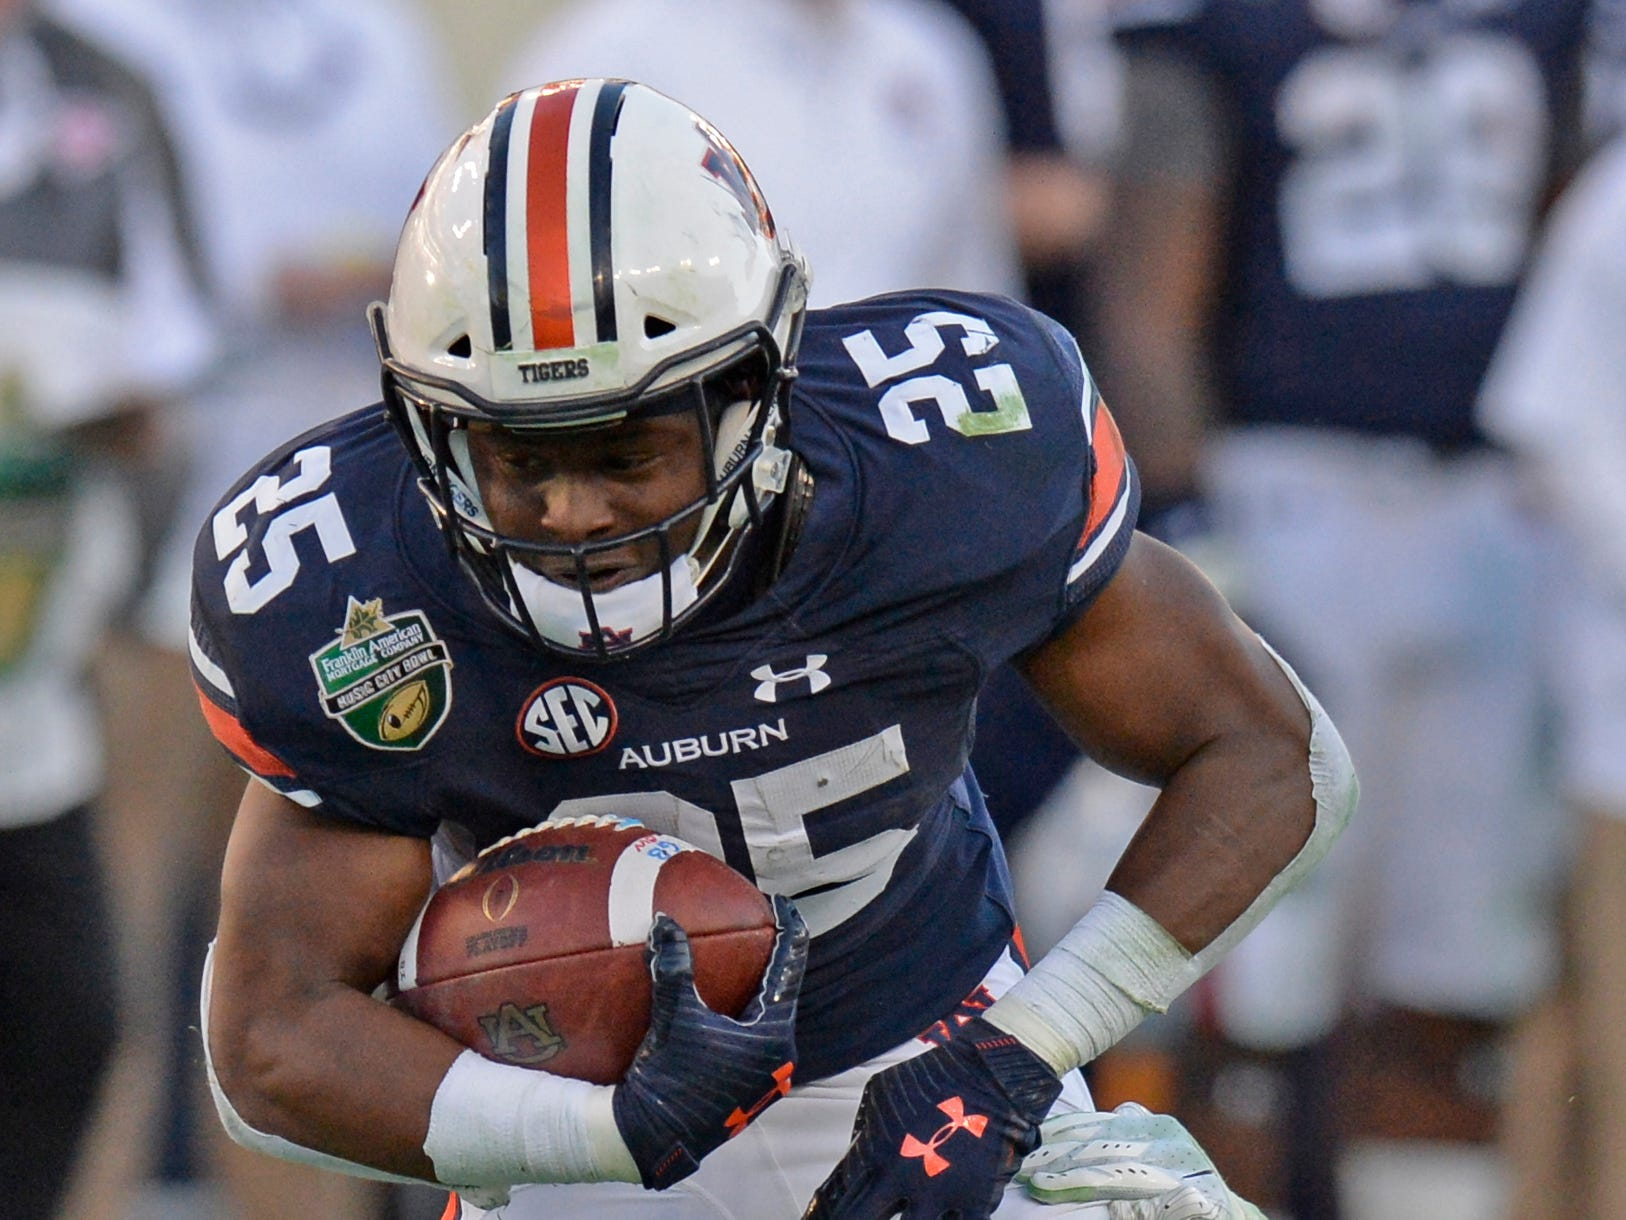 Auburn running back Shaun Shivers (25) gains yards in the fourth quarter of the Music City Bowl NCAA college football game Friday, Dec. 28, 2018, at Nissan Stadium in Nashville, Tenn.